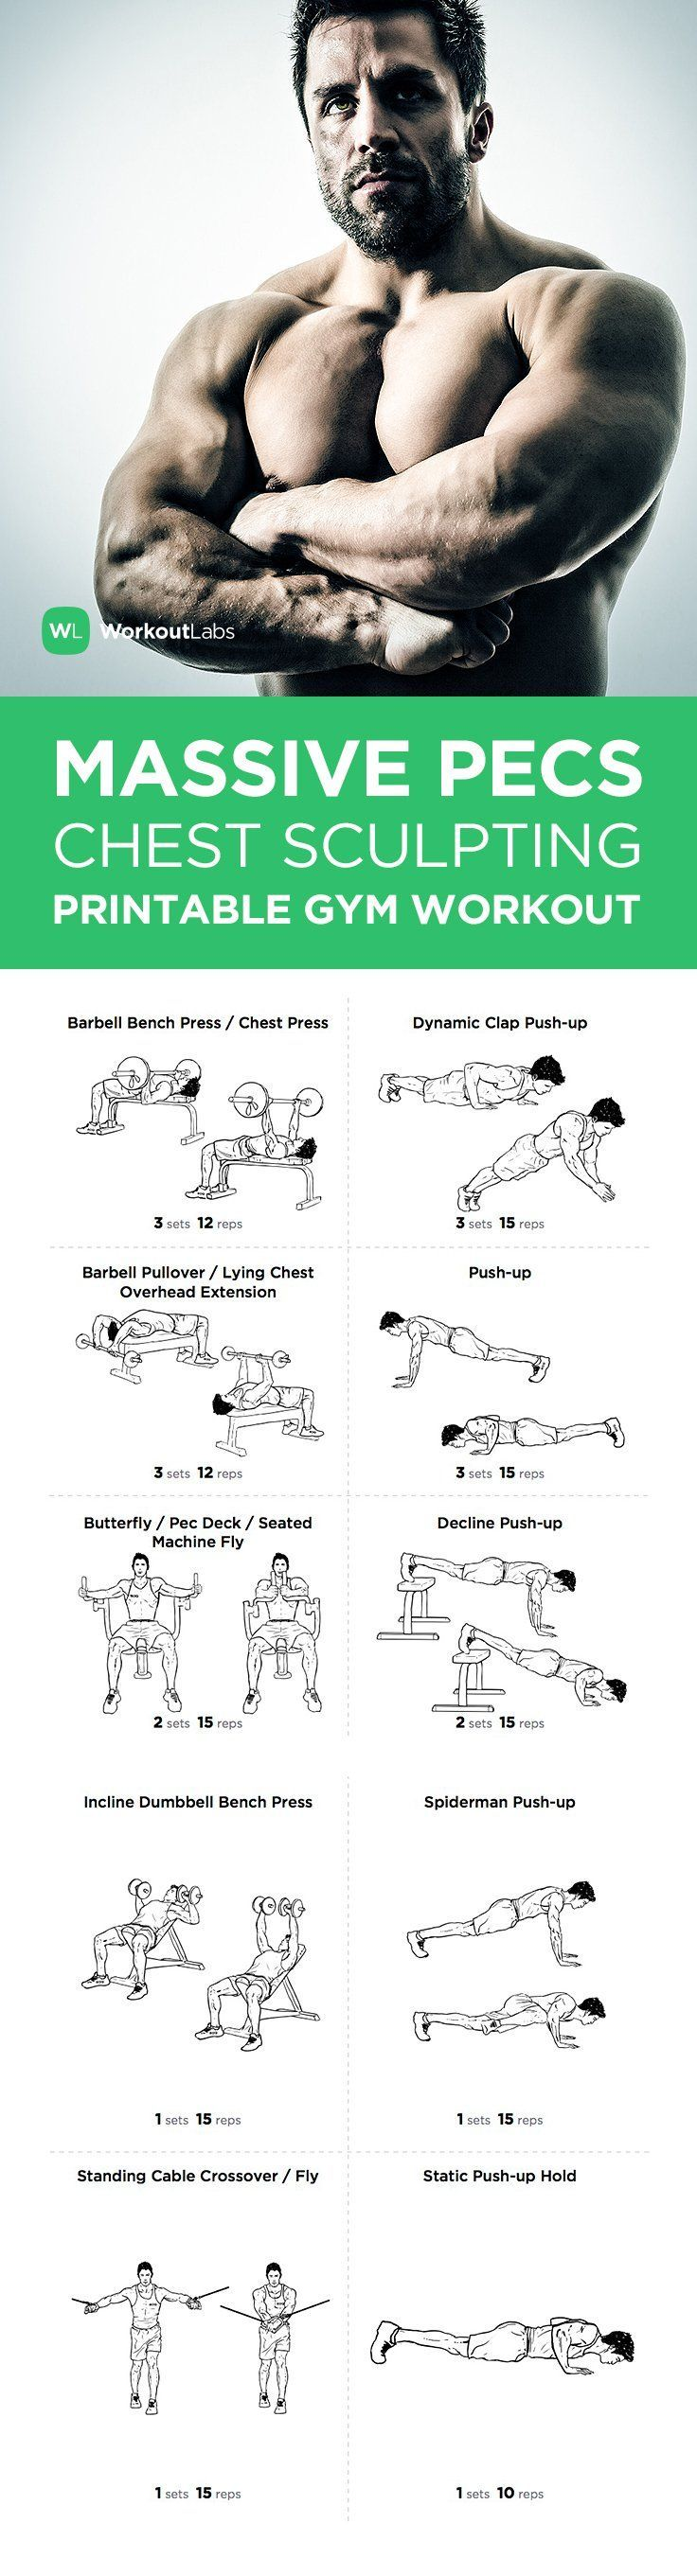 FREE PDF Massive Pecs Chest Sculpting Workout For Men Visit Wlabsme 1roPD7m To Download